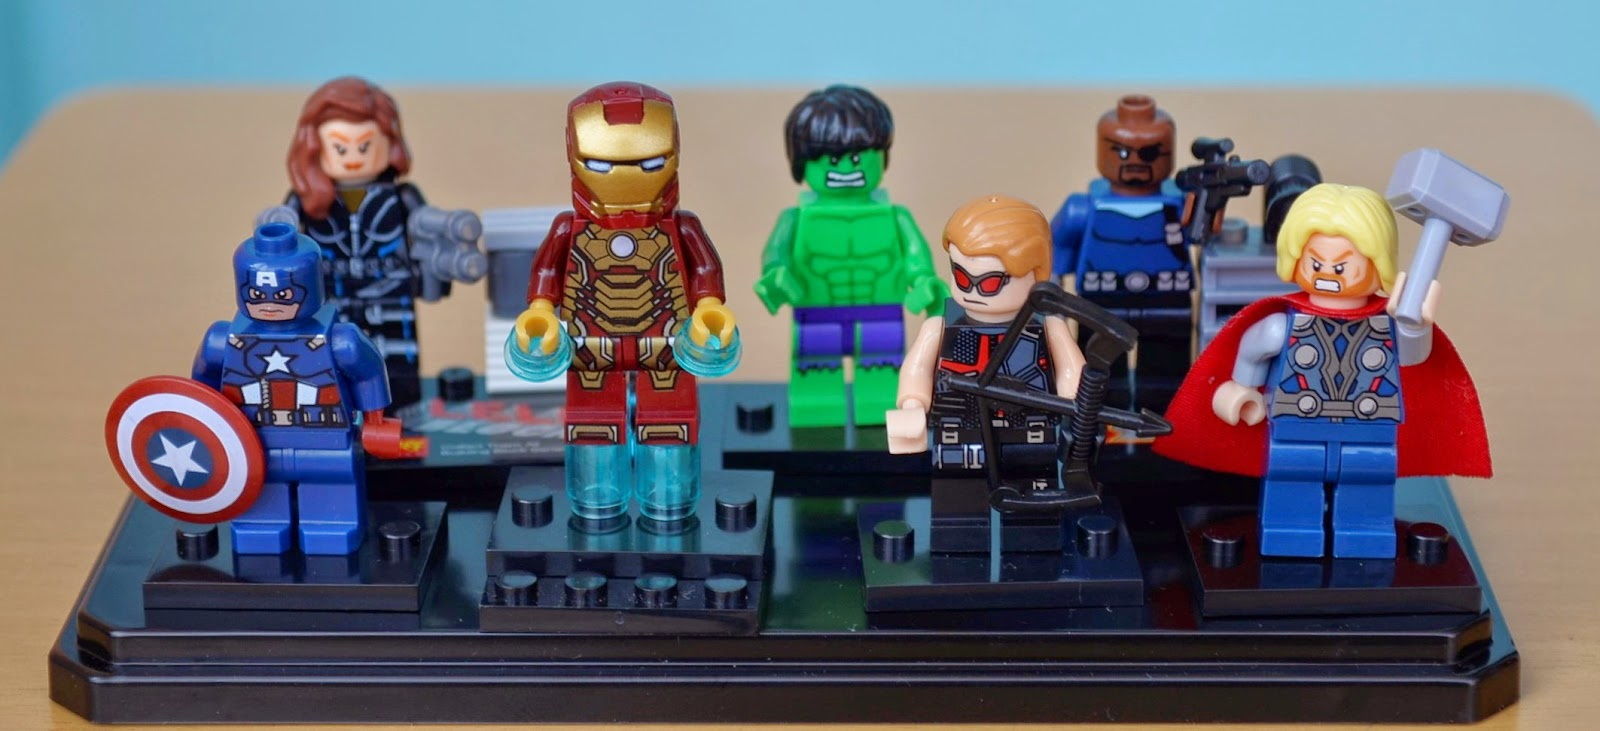 Brick Toys and all Sorts: 2014 Year of Bootleg Lego - Bootlego